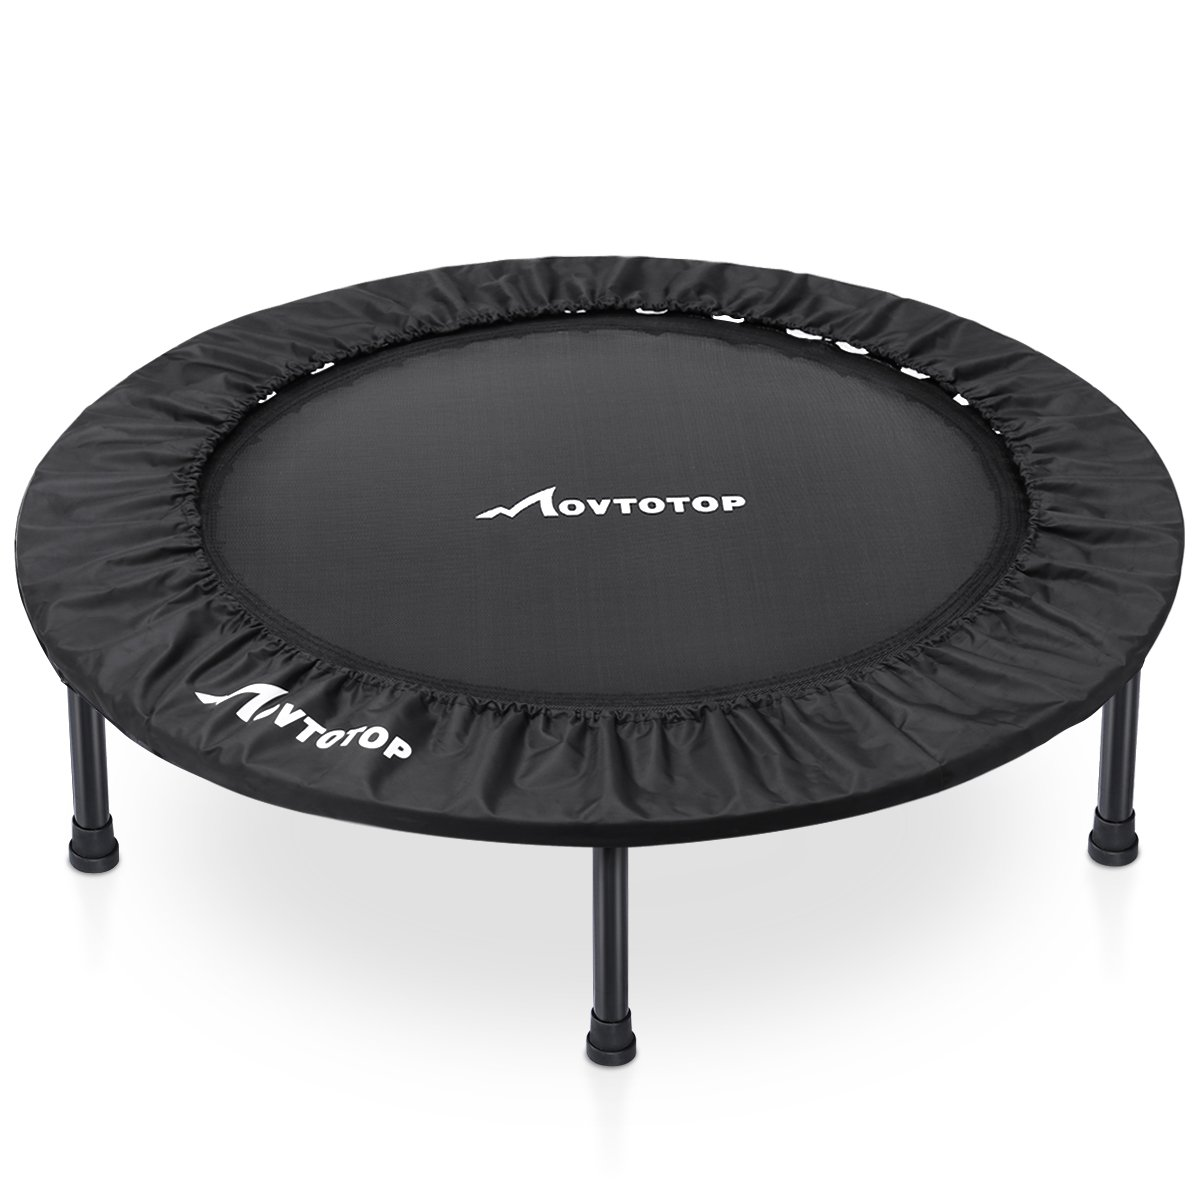 MOVTOTOP Rebounder Trampoline 38 Inch, Folding Indoor Trampolines with Safety Pad, Fun Mini Fitness Trampoline for Kids Adults – Max Load 220lbs, Black